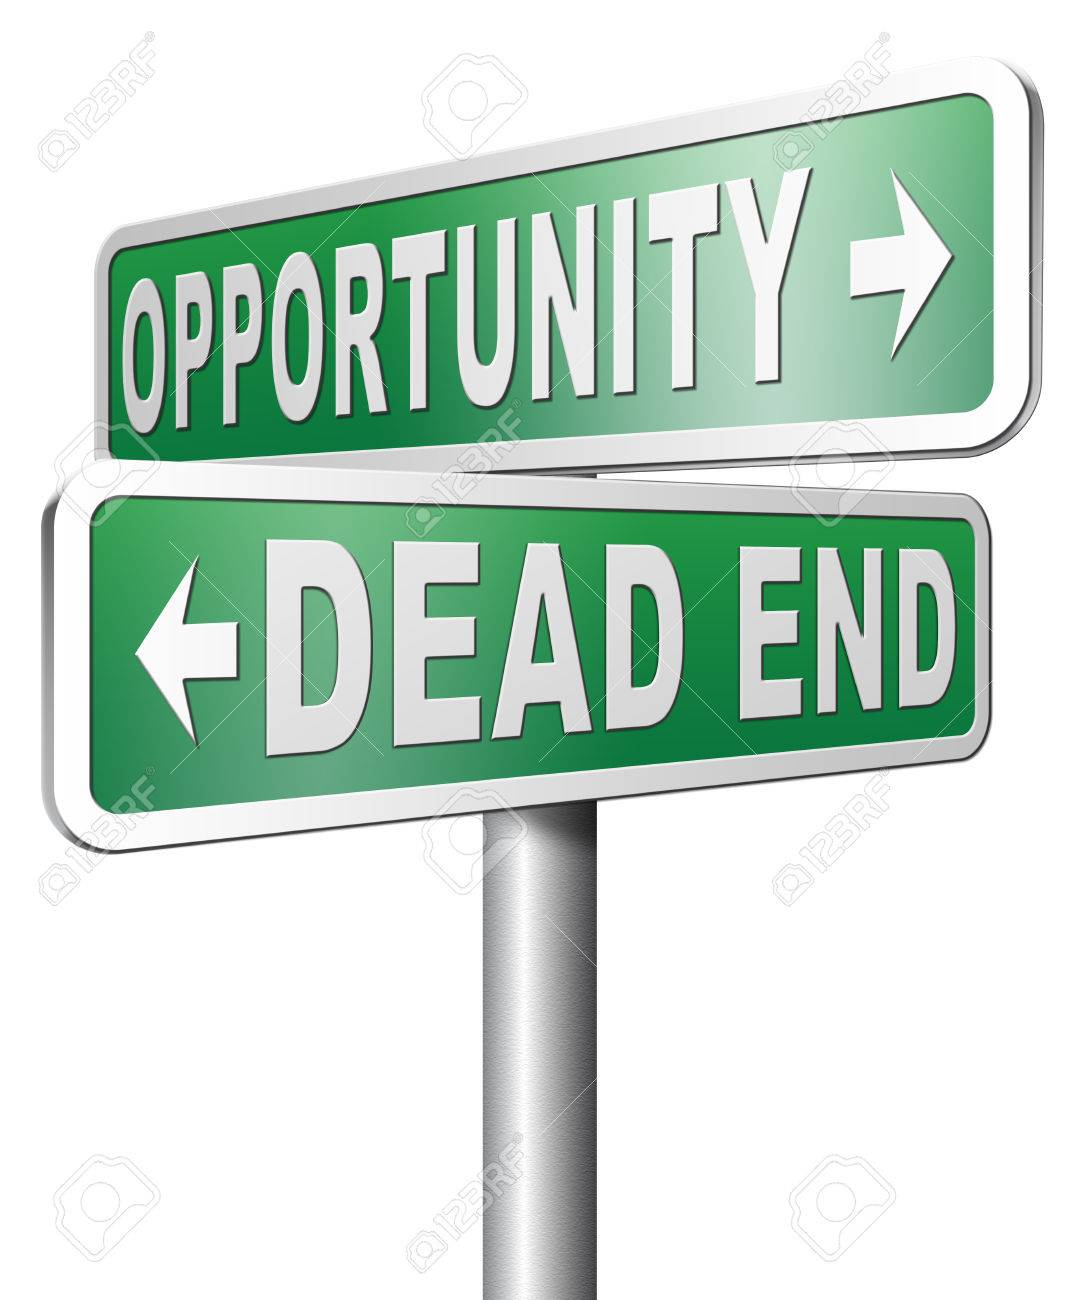 dead end job images stock pictures royalty dead end job dead end job opportunity or dead end a better choice for business way or